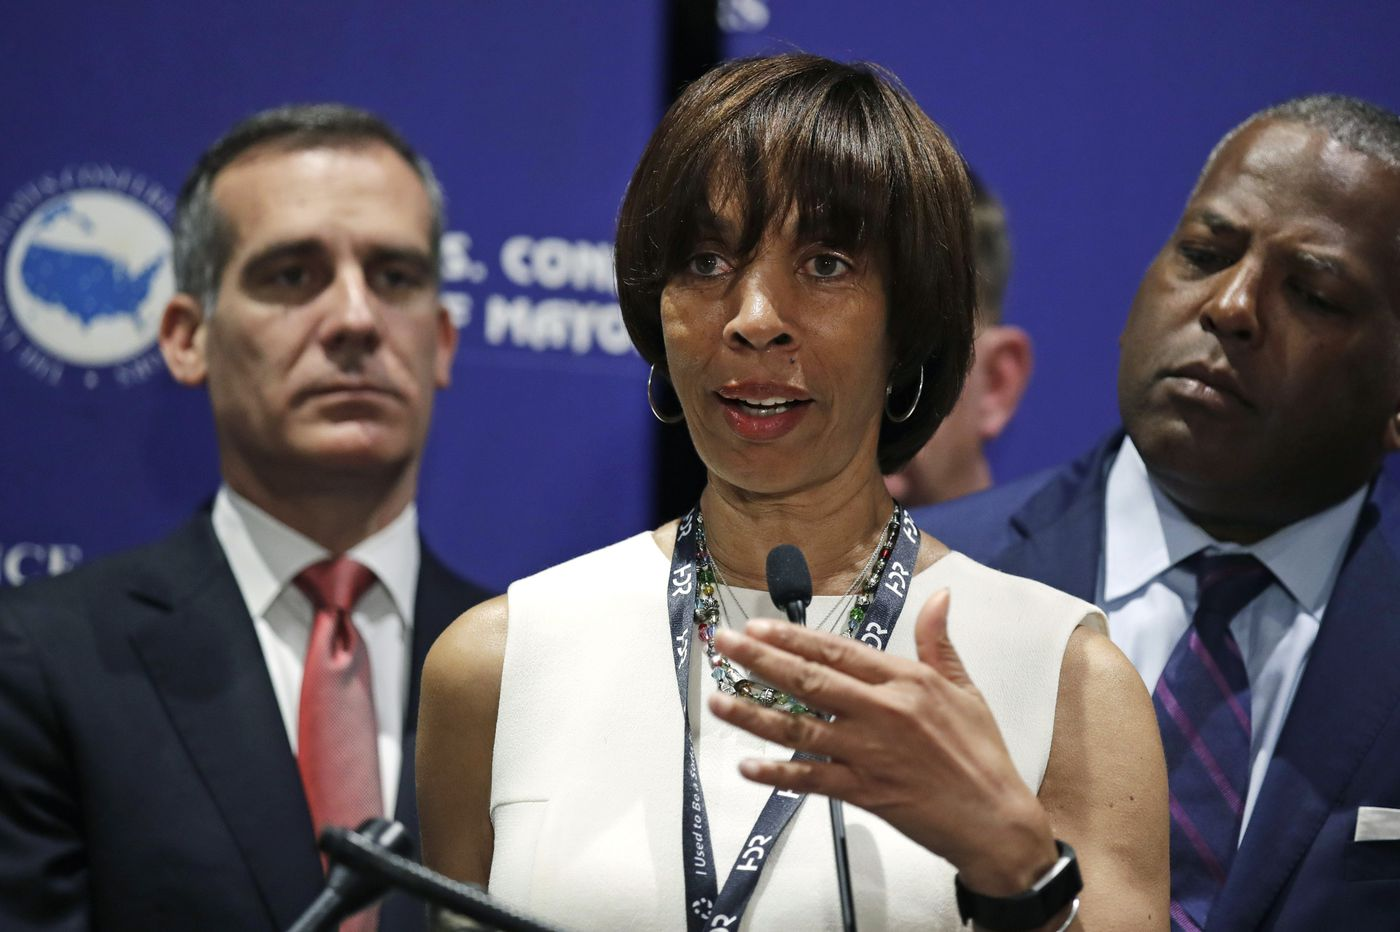 Baltimore mayor's $500K book deal draws intense criticism